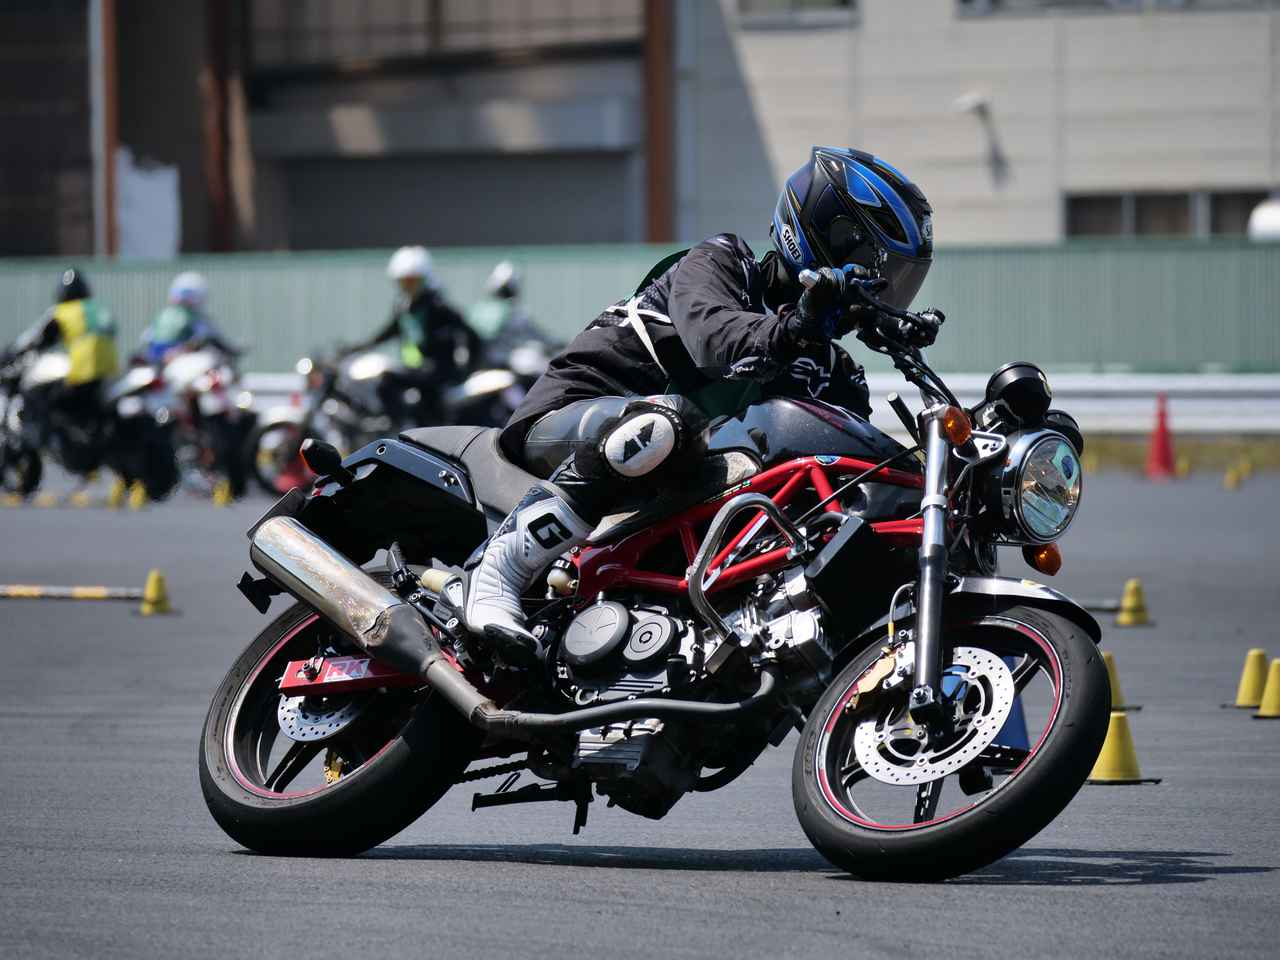 Images : 10番目の画像 - ジムカーナで活躍するホンダ「VTR」をもっと見る! - LAWRENCE - Motorcycle x Cars + α = Your Life.